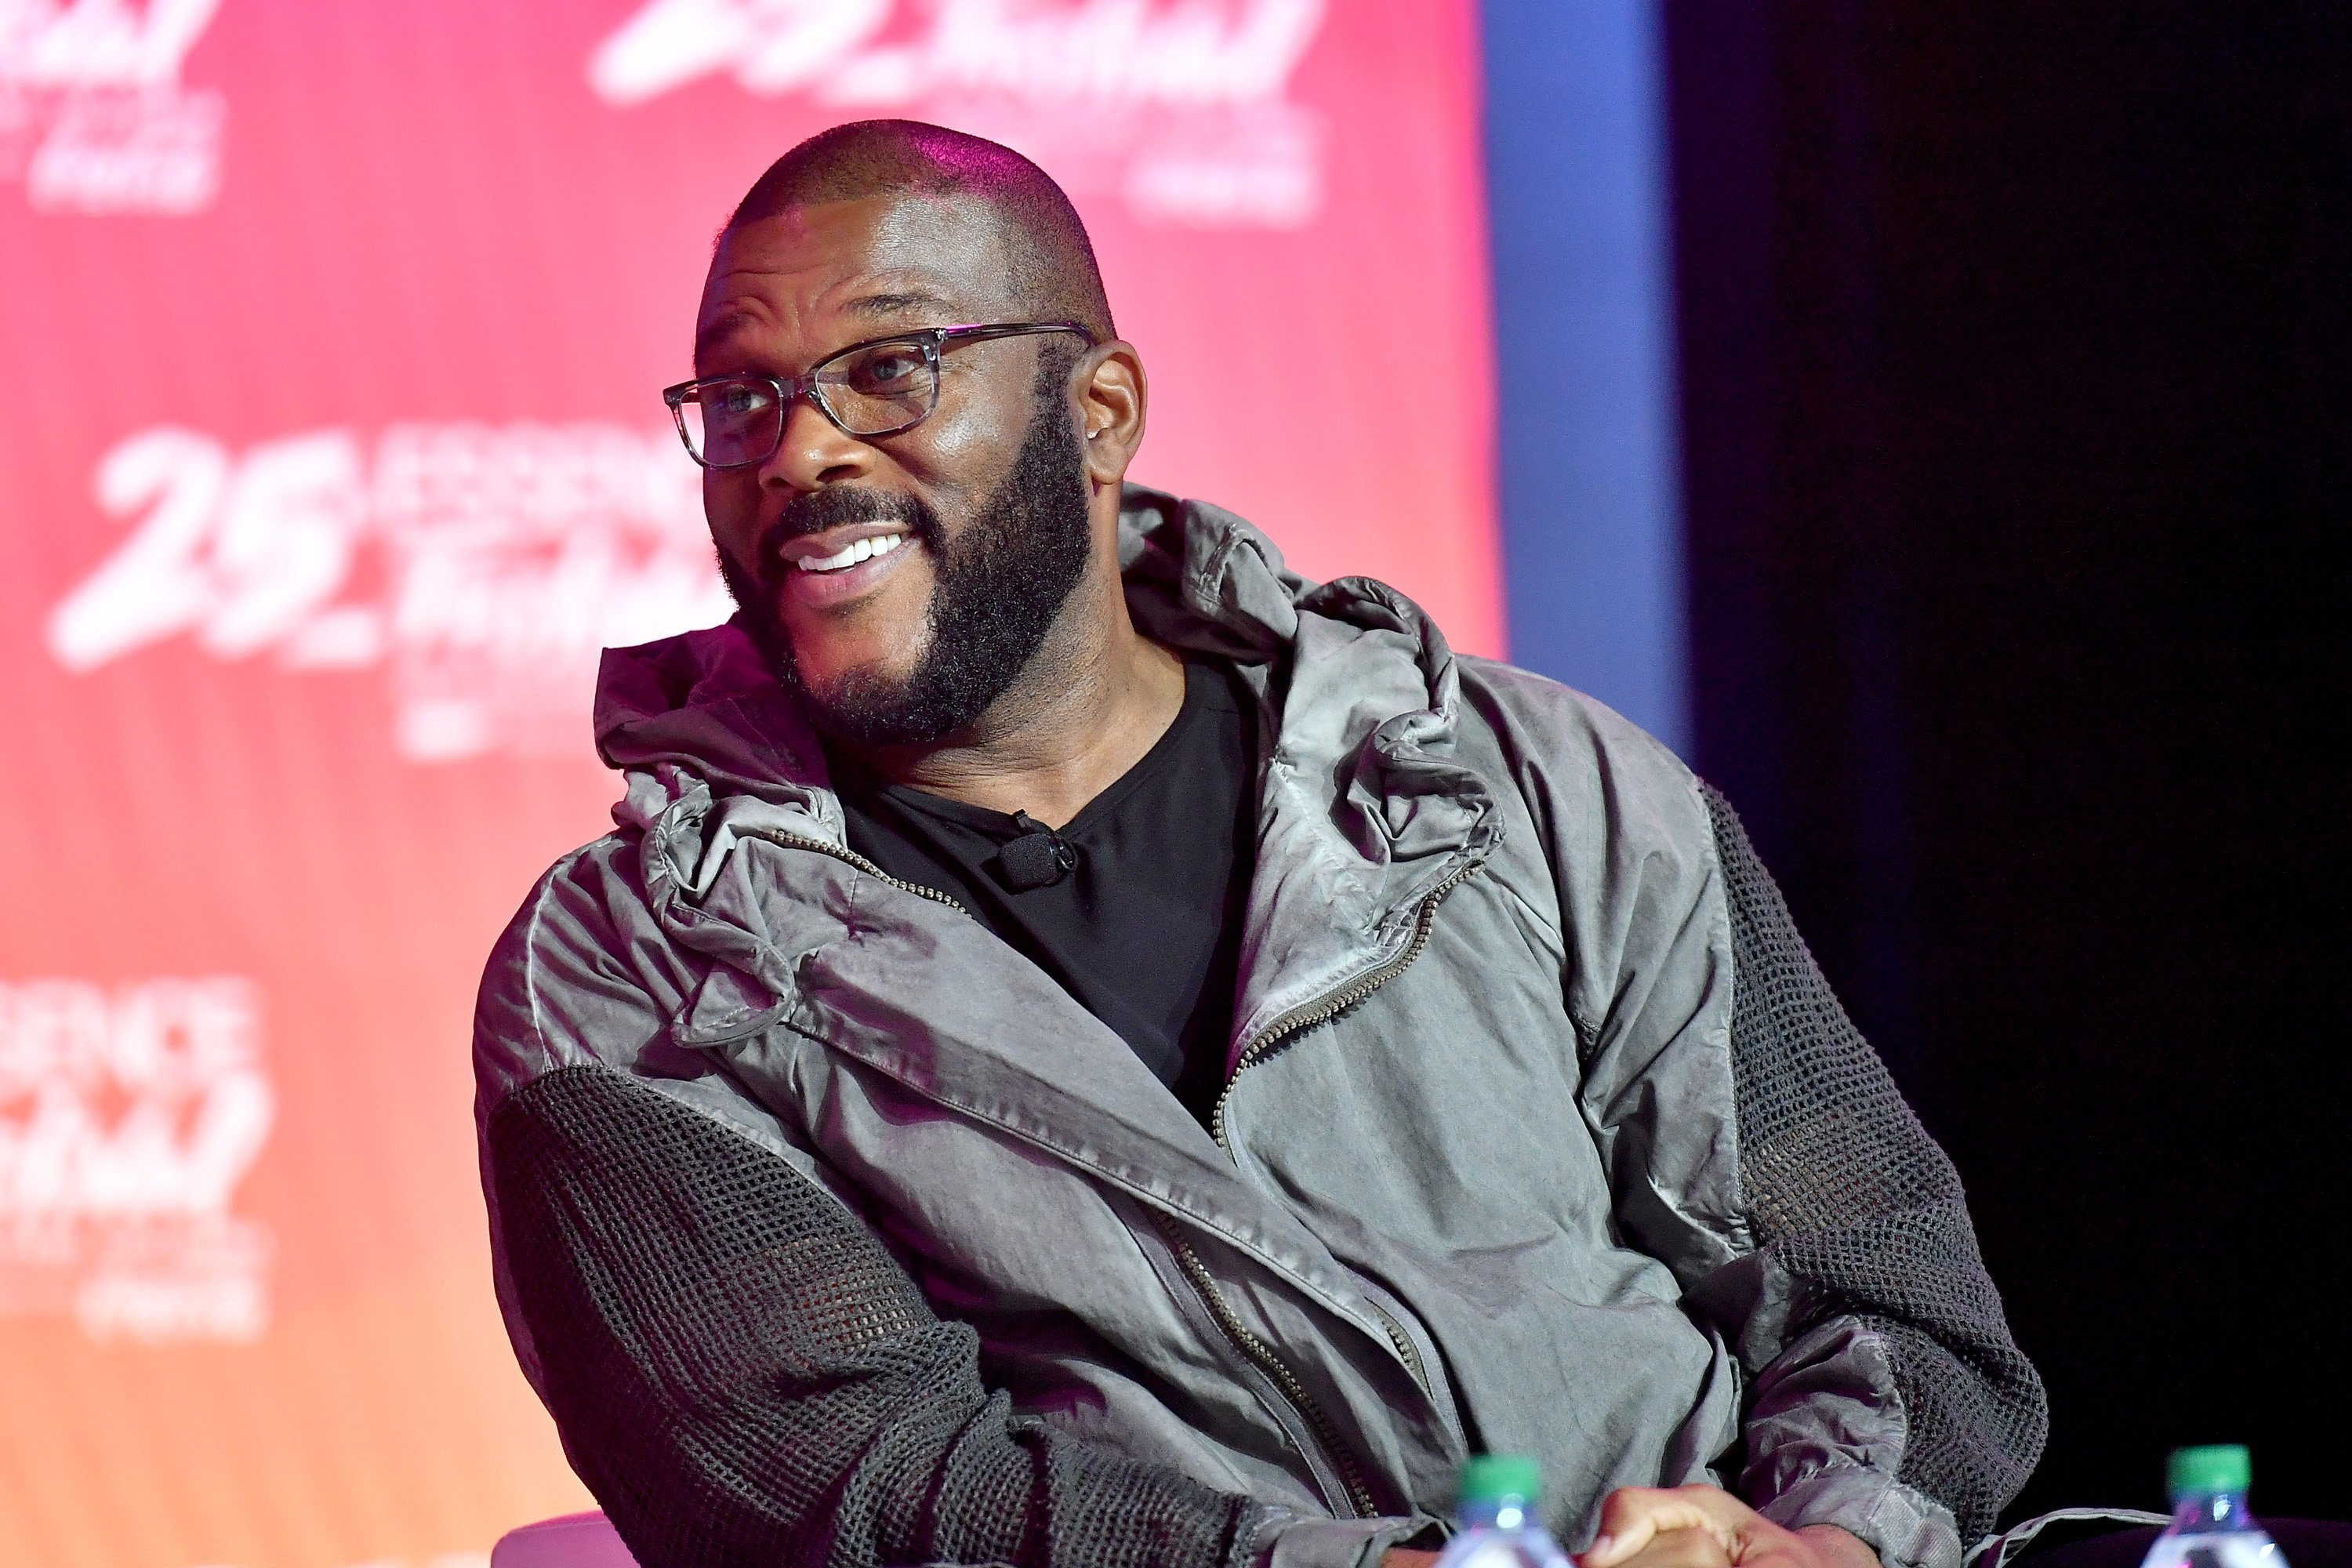 Tyler Perry at the ESSENCE Festival in New Orleans in July  2019 | Photo: Getty Images